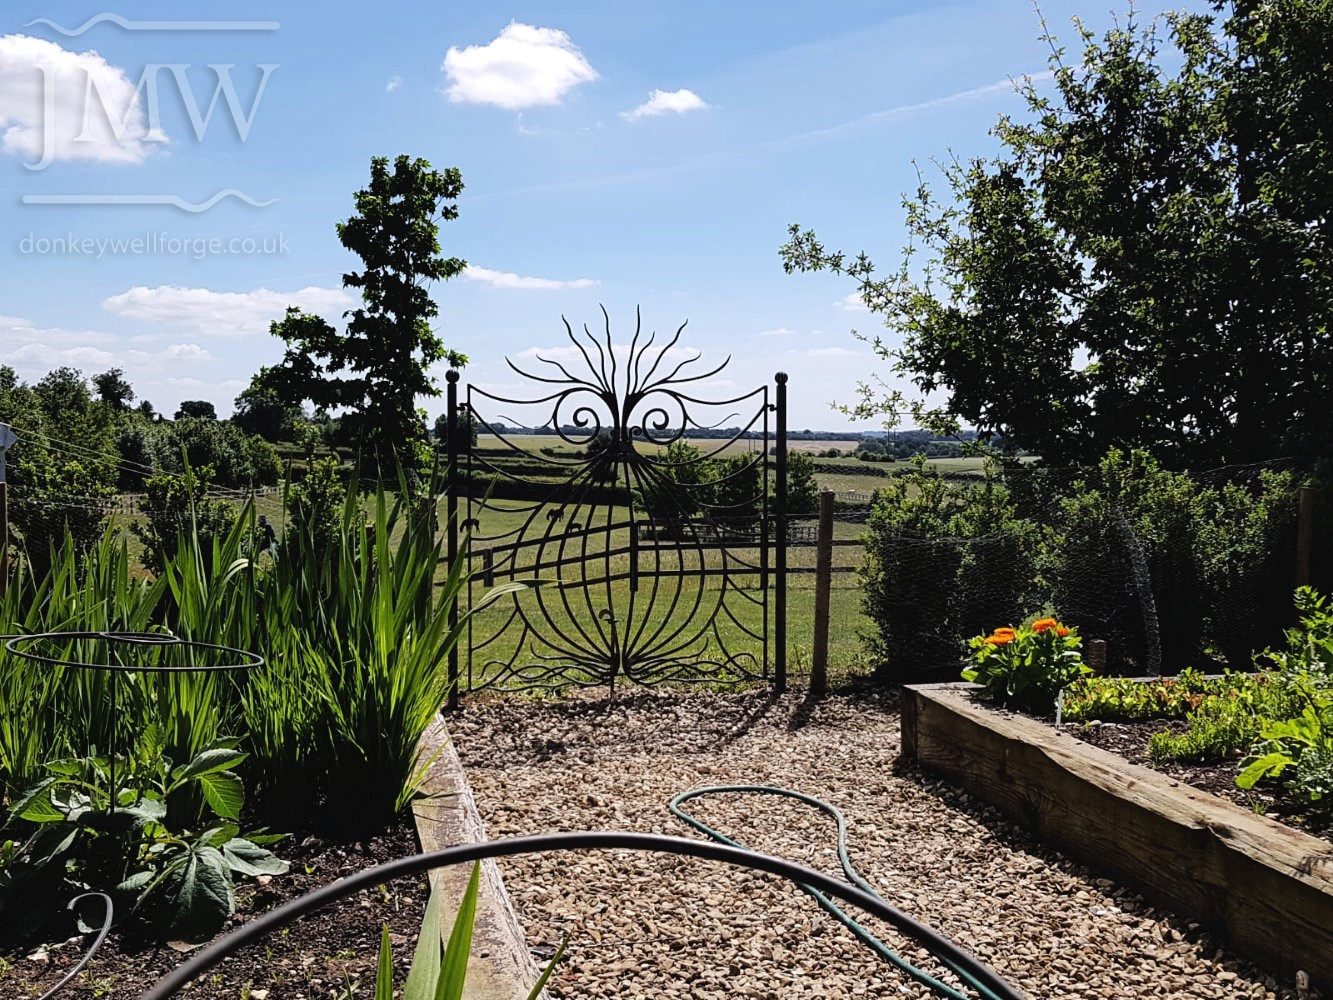 bespoke-onion-gate-ornate-blacksmith-garden-donkeywell-forge-ironwork